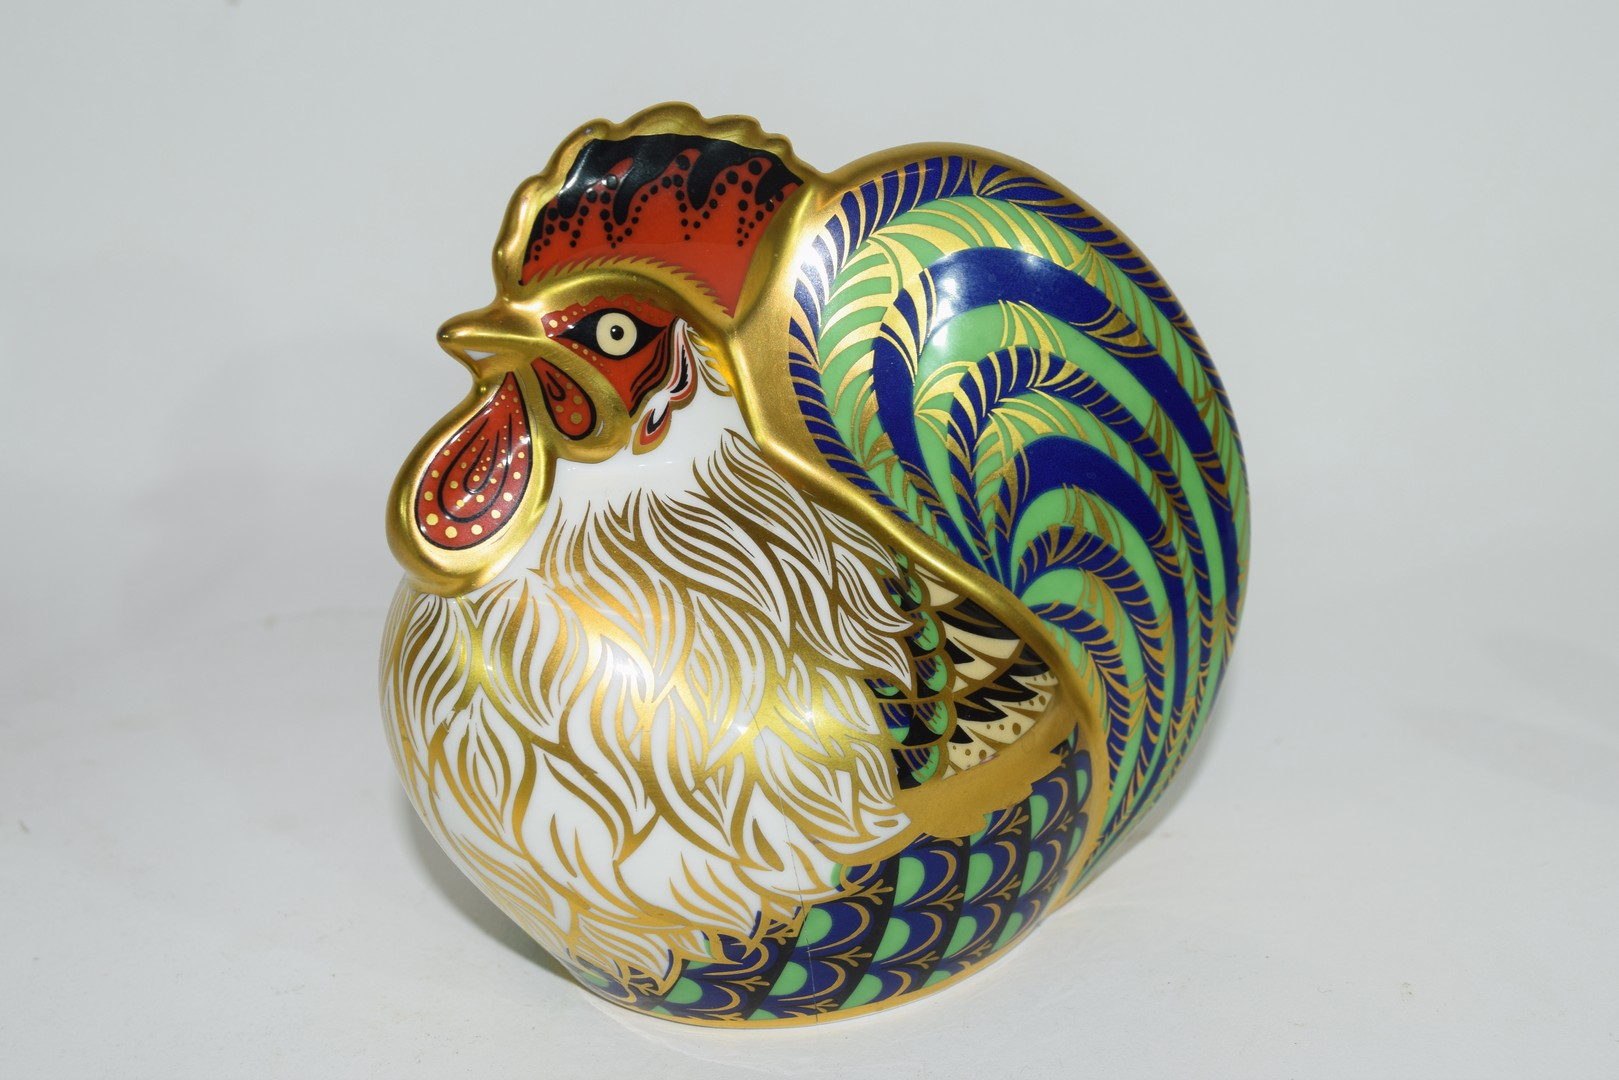 Group of Royal Crown Derby paperweights - Image 4 of 8